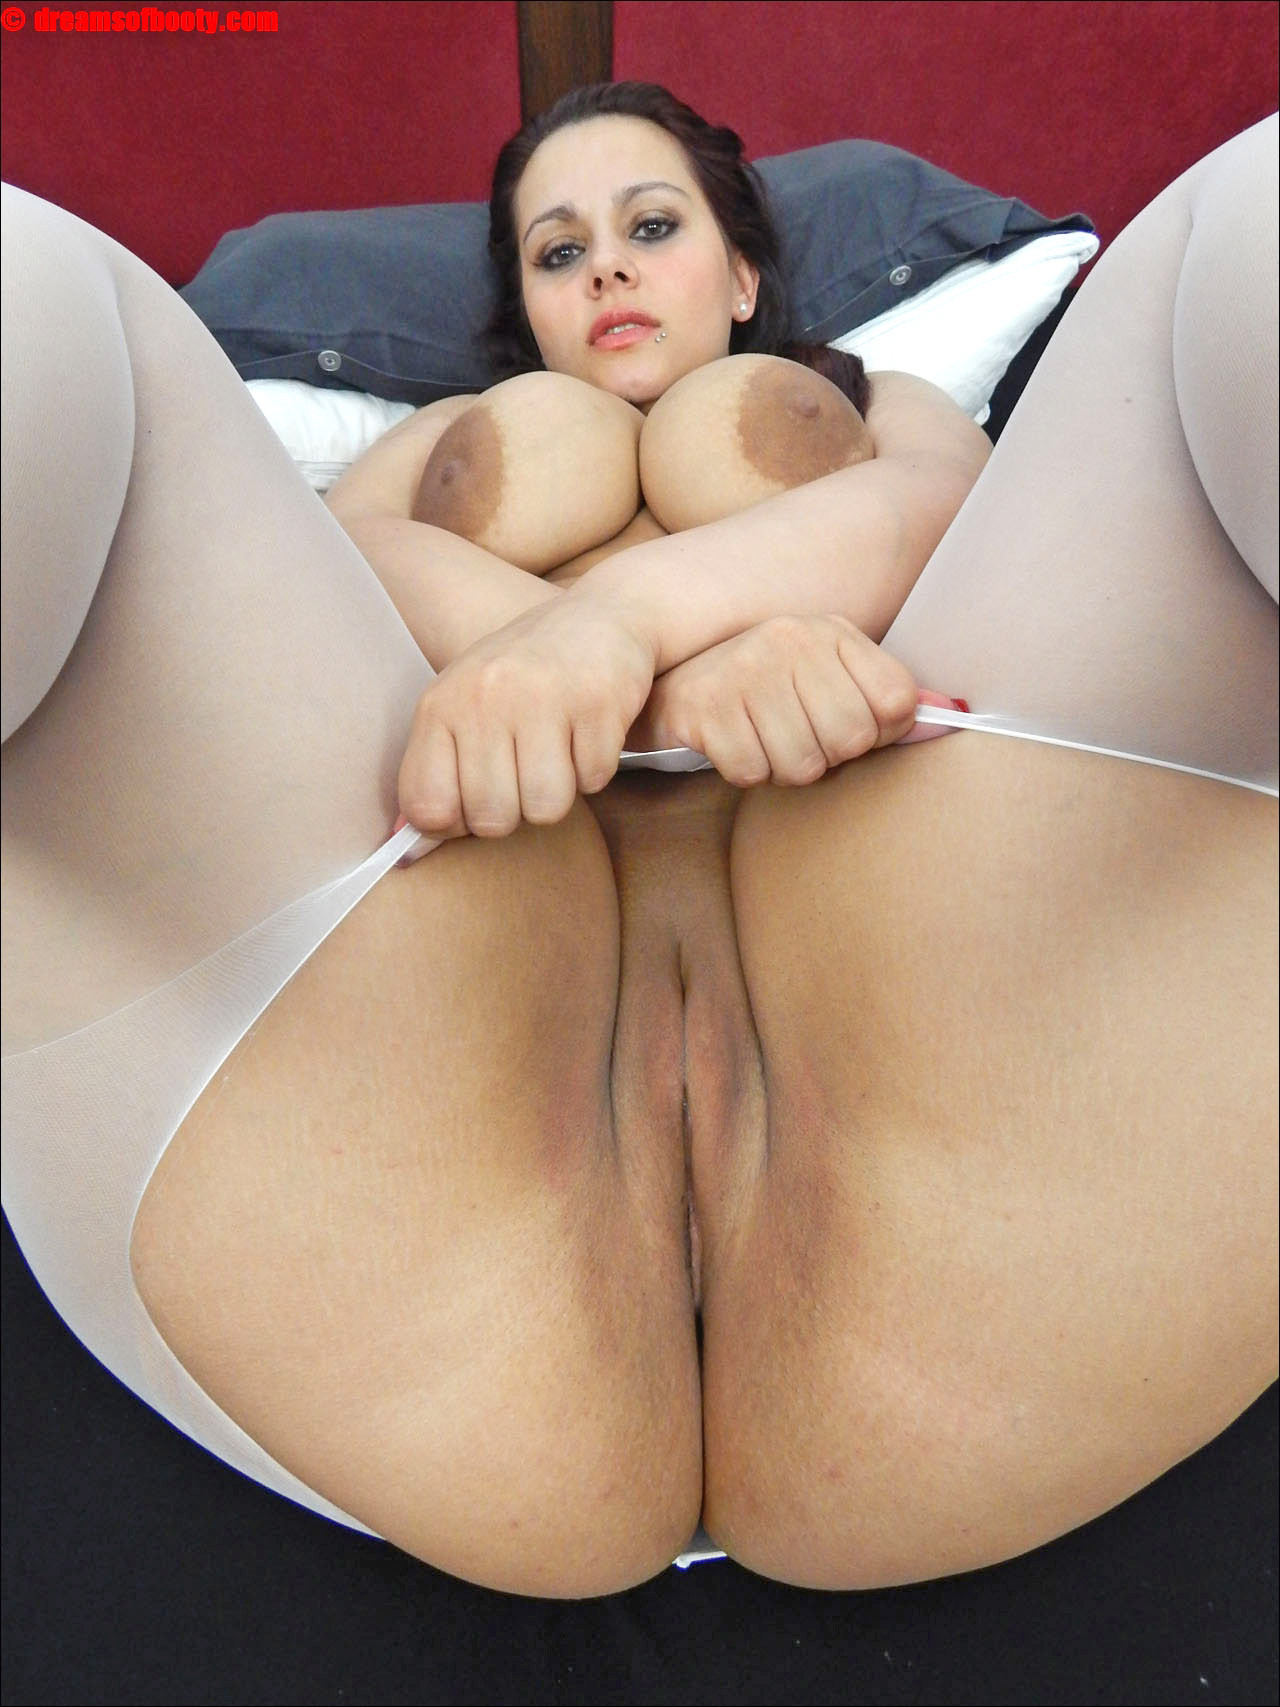 Fucking Pictures Gianna michaels fucking 2 giant cocks